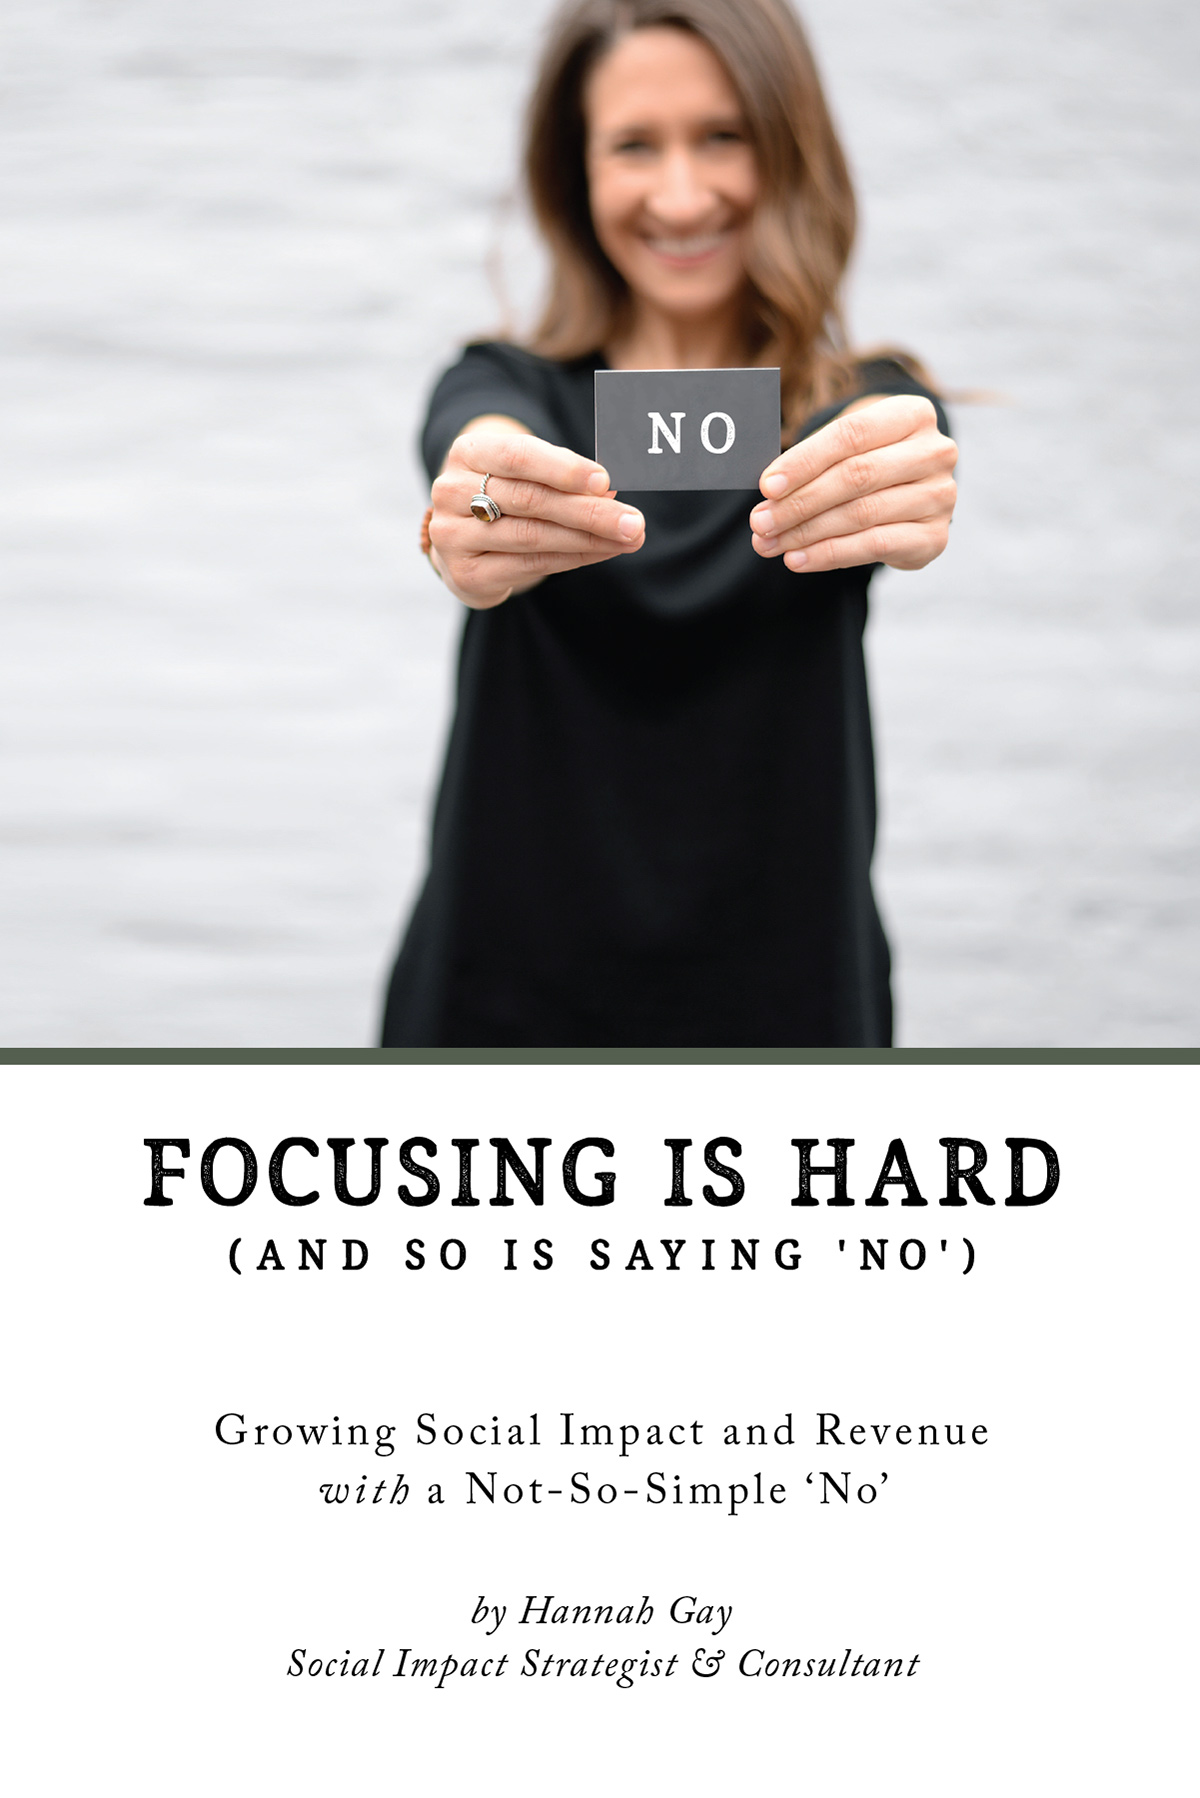 Focusing Is Hard (and So Is Saying 'No'): Growing Social Impact and Revenue With a Not-So-Simple 'No' by Hannah Gay, Social Impact Strategist and Consultant